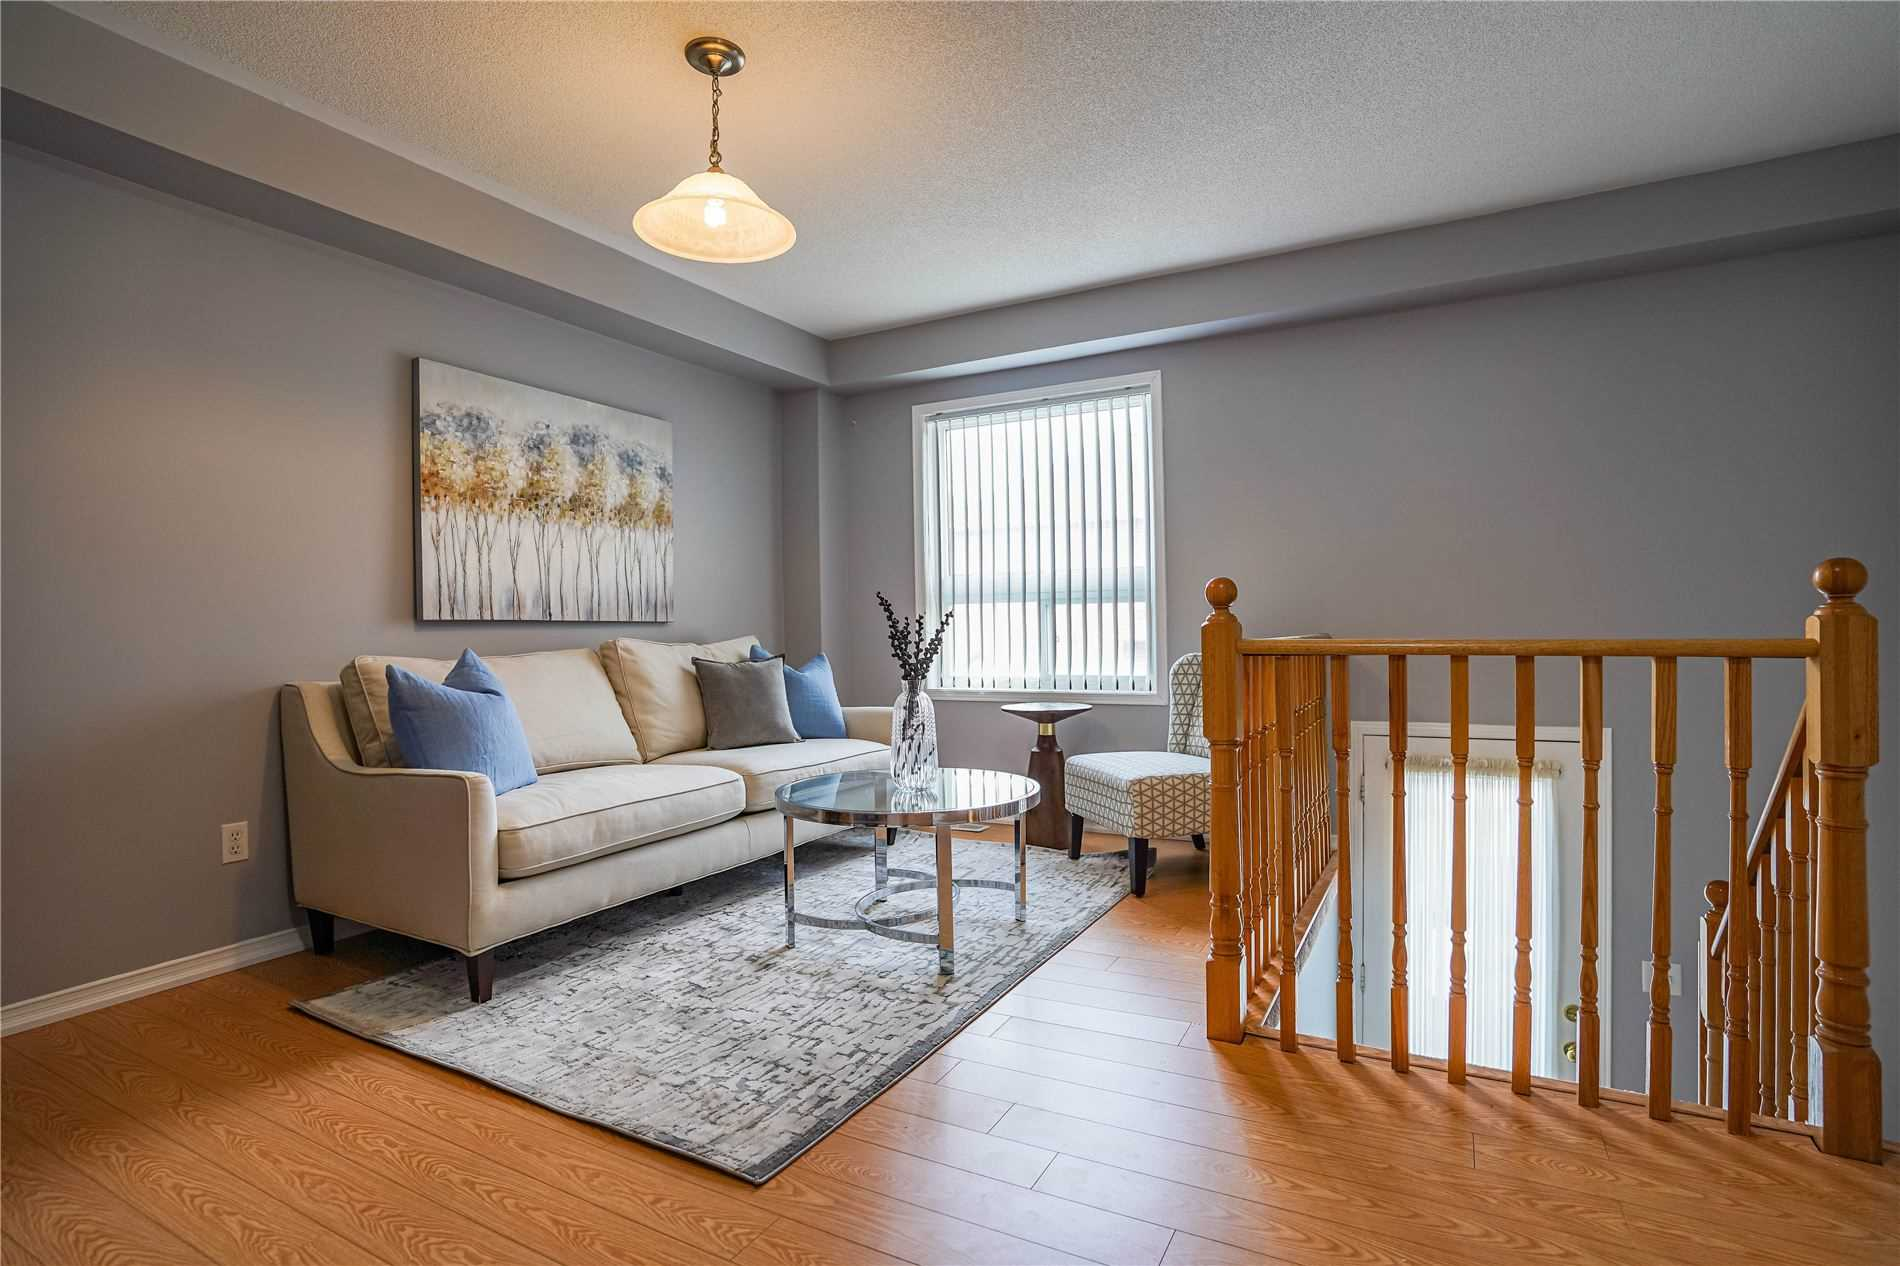 Image 14 of 25 showing inside of 3 Bedroom Condo Townhouse 3-Storey for Sale at 68 Oakins Lane W Unit# 34, Ajax L1T0H1